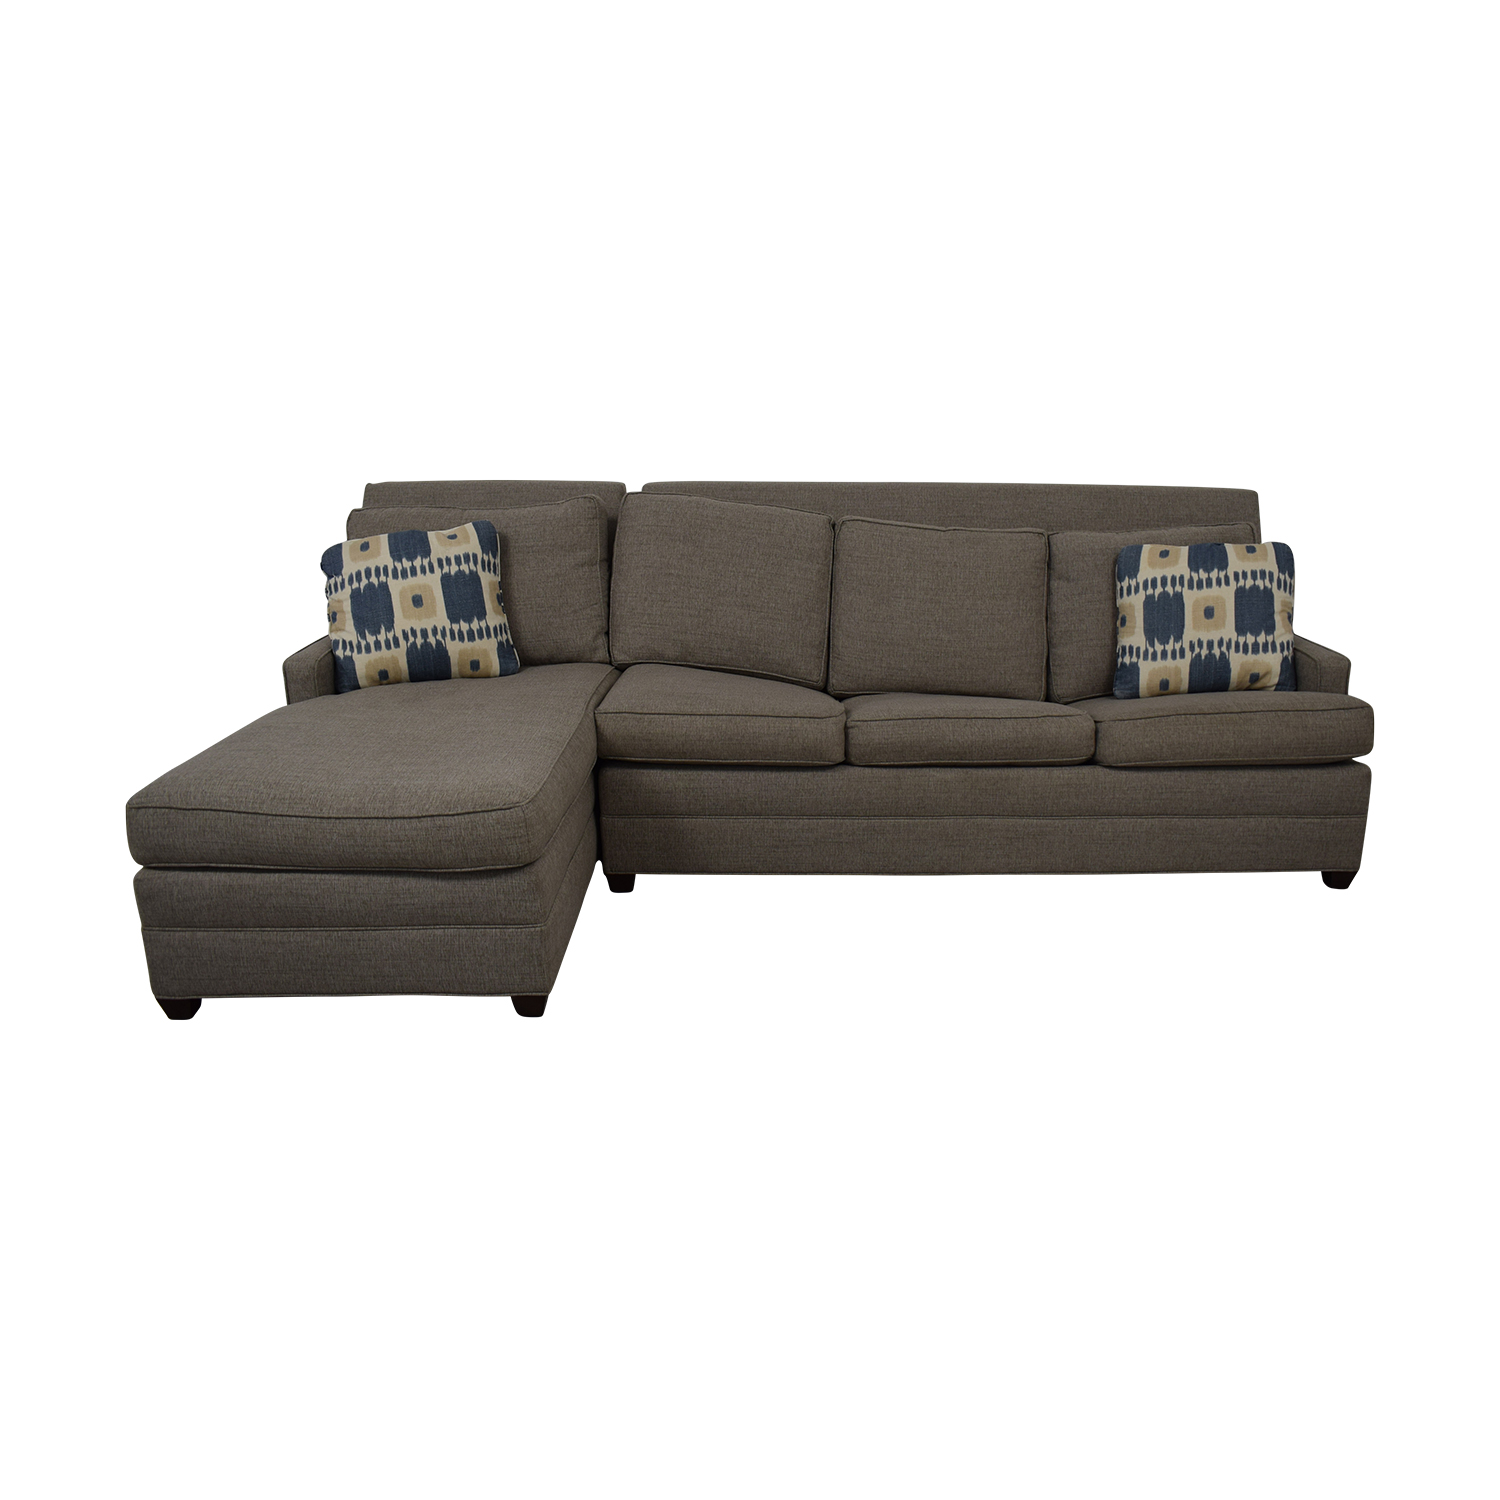 Vanguard Furniture Left Chaise Queen Sleeper Sofa / Sofas